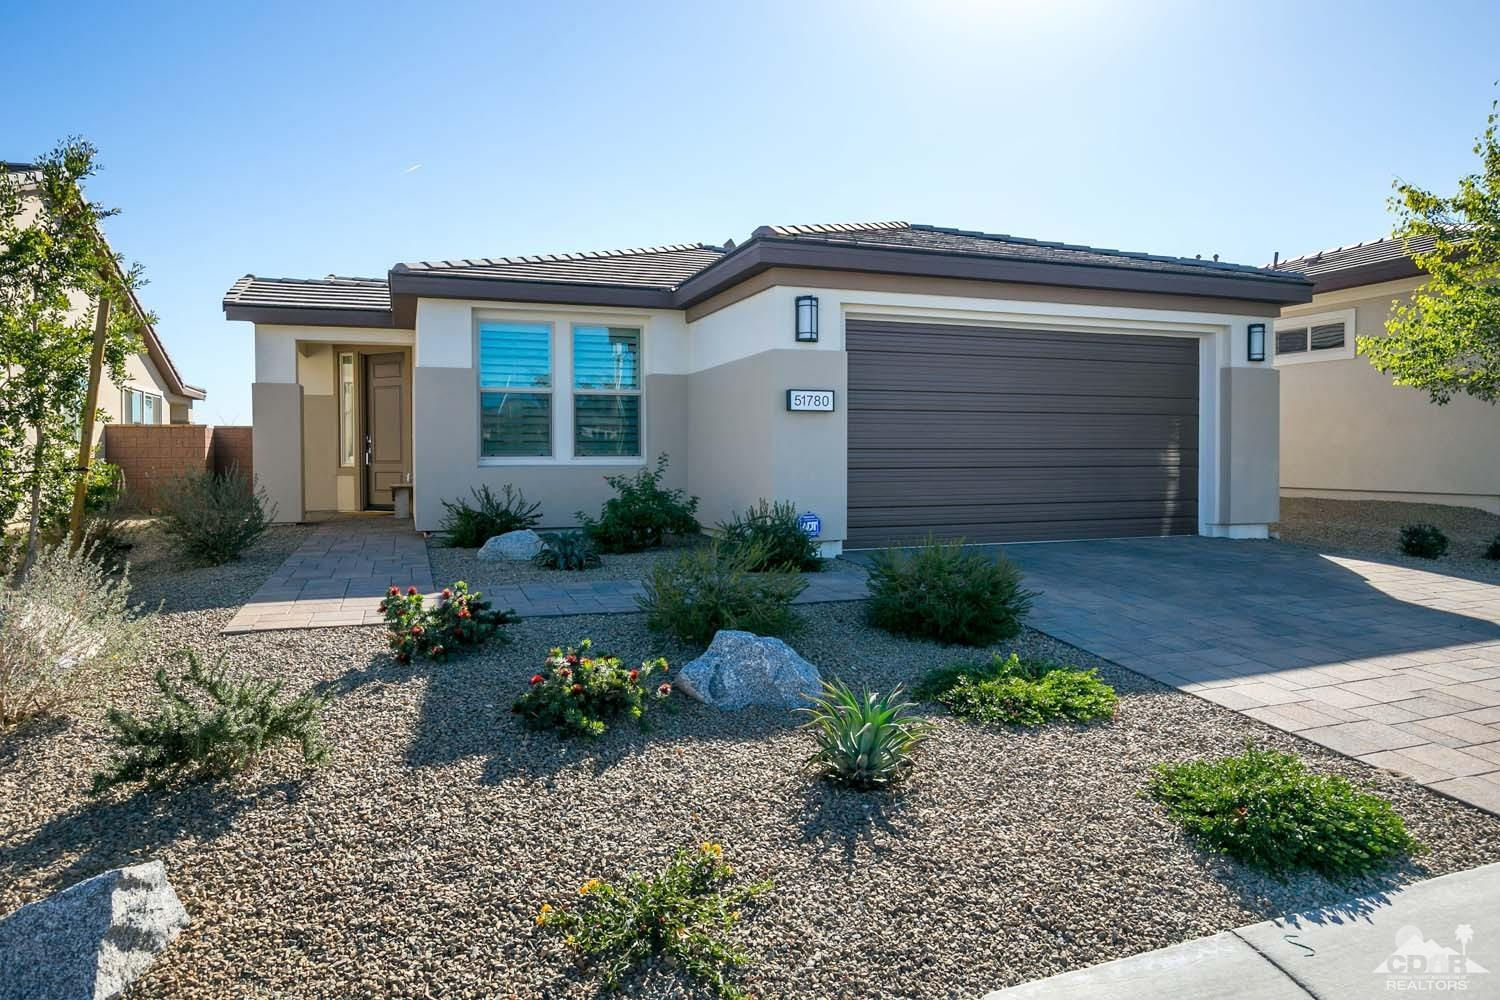 51780 Two Palms Way South, Indio